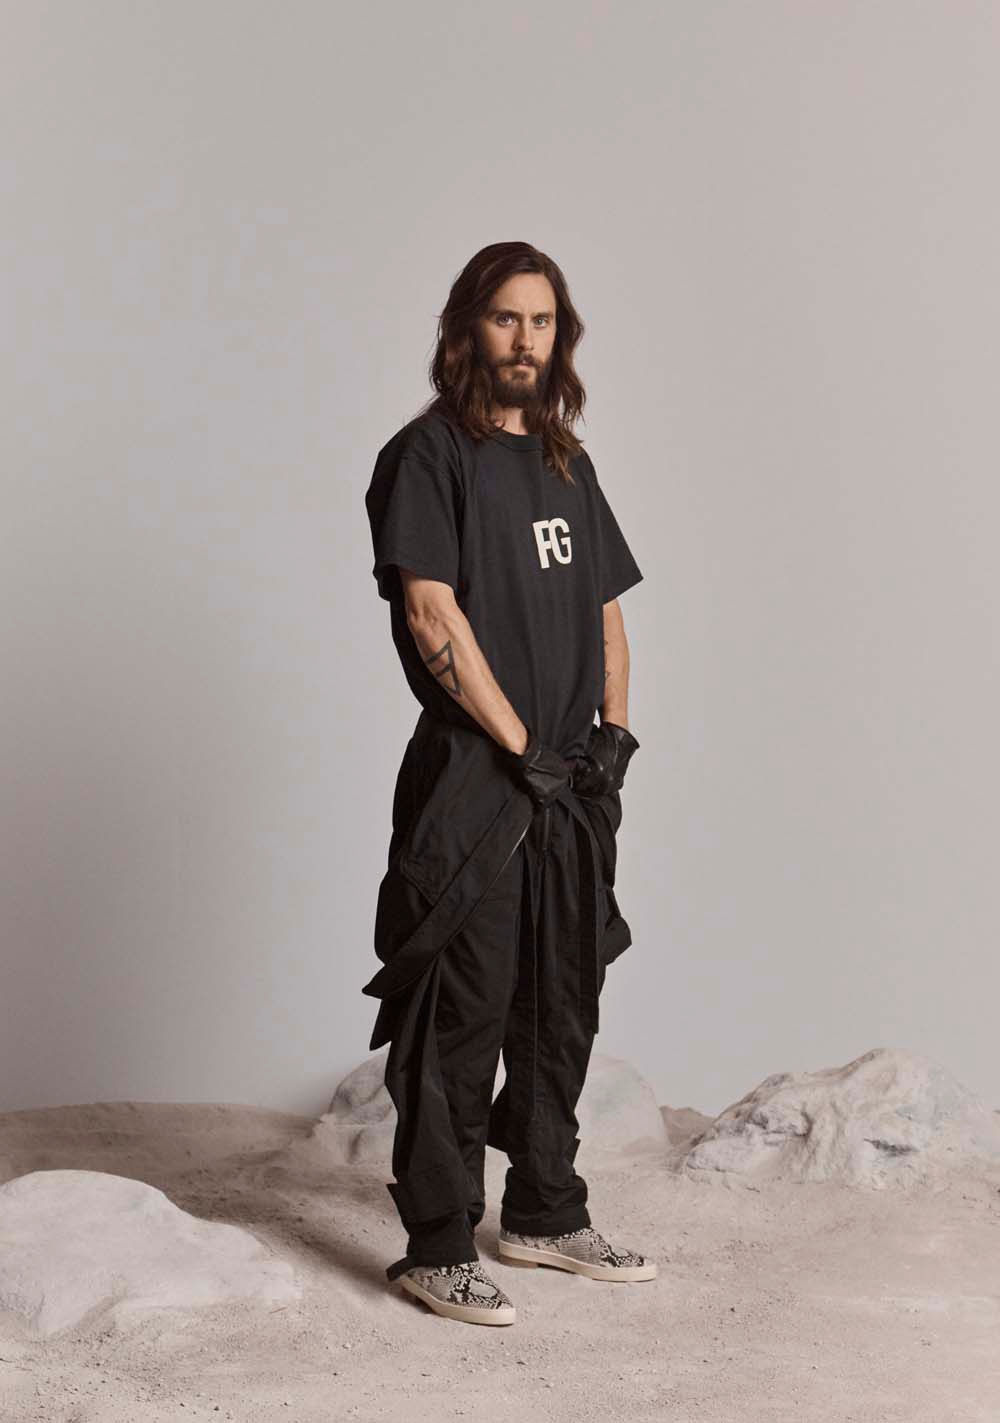 https_%2F%2Fhypebeast.com%2Fimage%2F2018%2F09%2Ffear-of-god-6-sixth-collection-jared-leto-nike-80.jpg